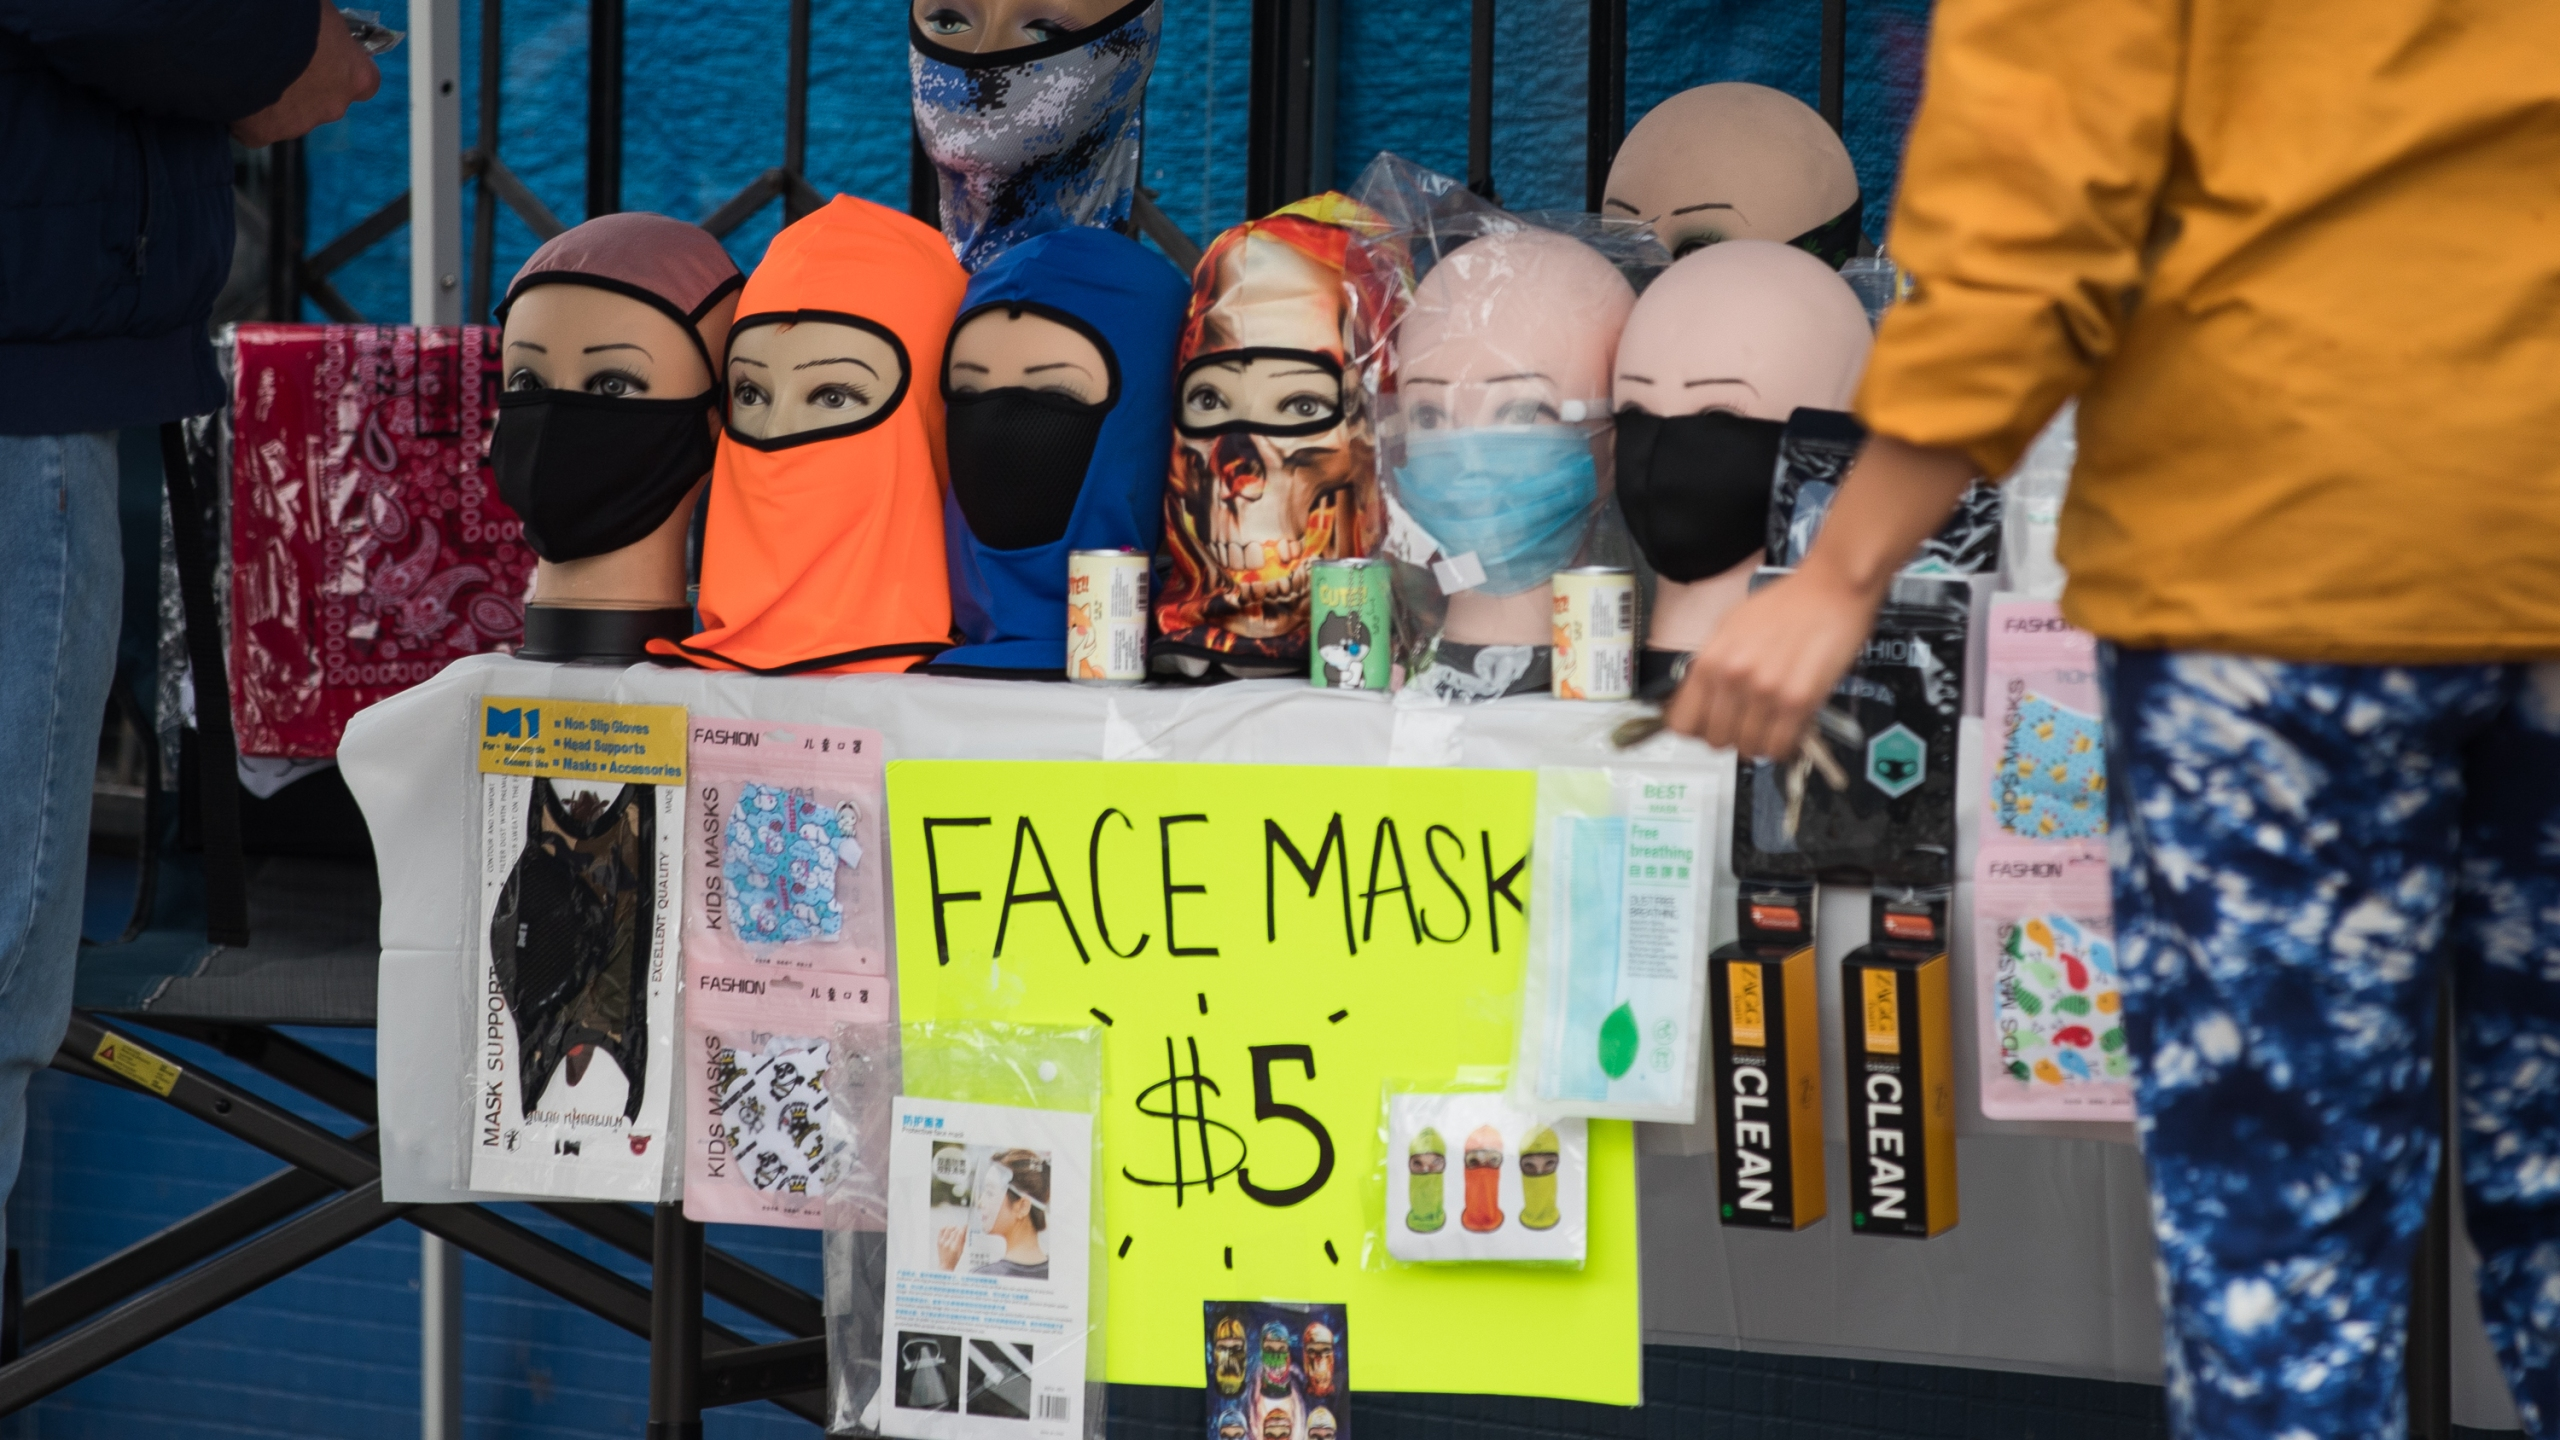 A vendor sells face masks on the sidewalk during the coronavirus pandemic on April 08, 2020, in Los Angeles. (Rich Fury/Getty Images)